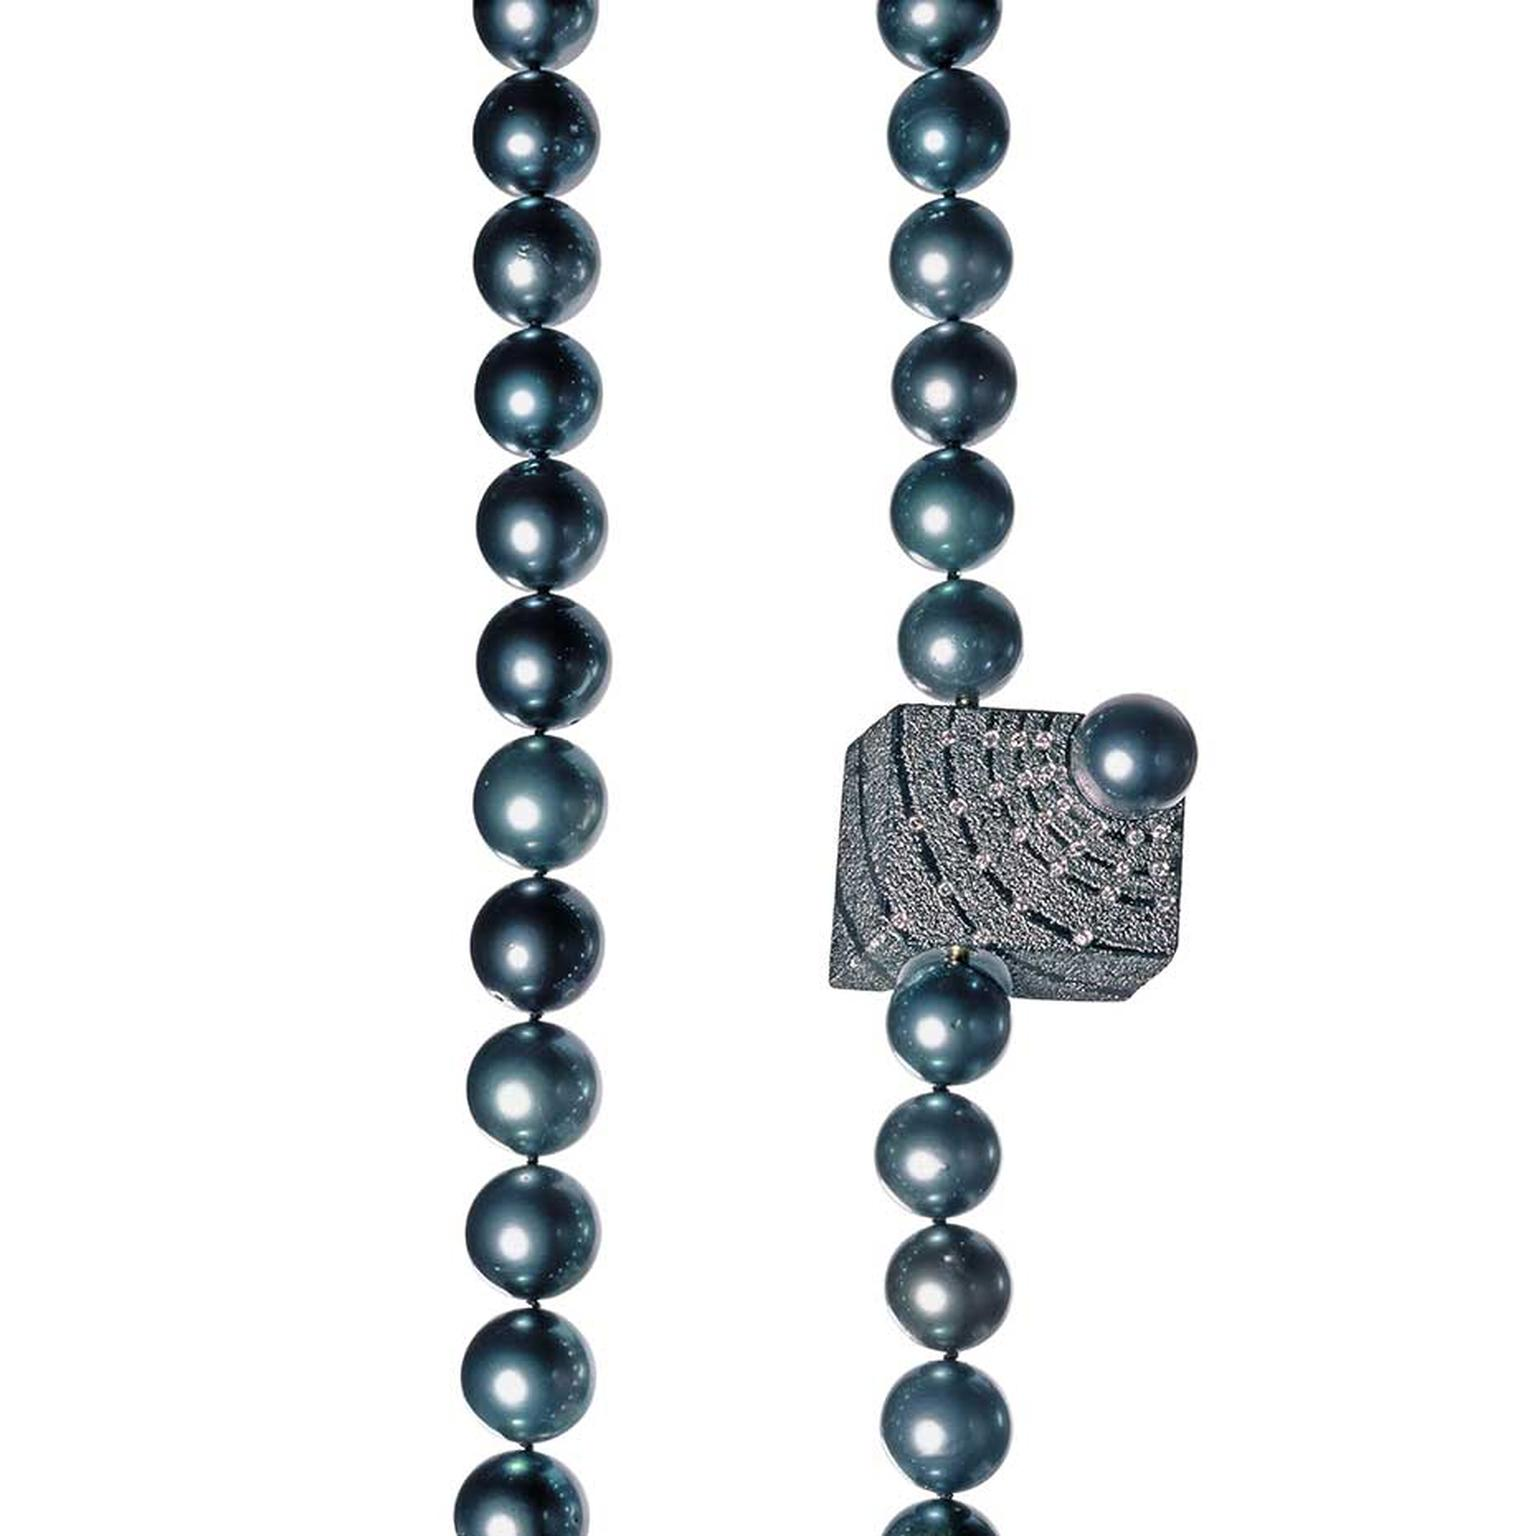 Atelier Zobel Vario clasp in gold and silver, with a Tahitian pearl and champagne brilliant diamonds.